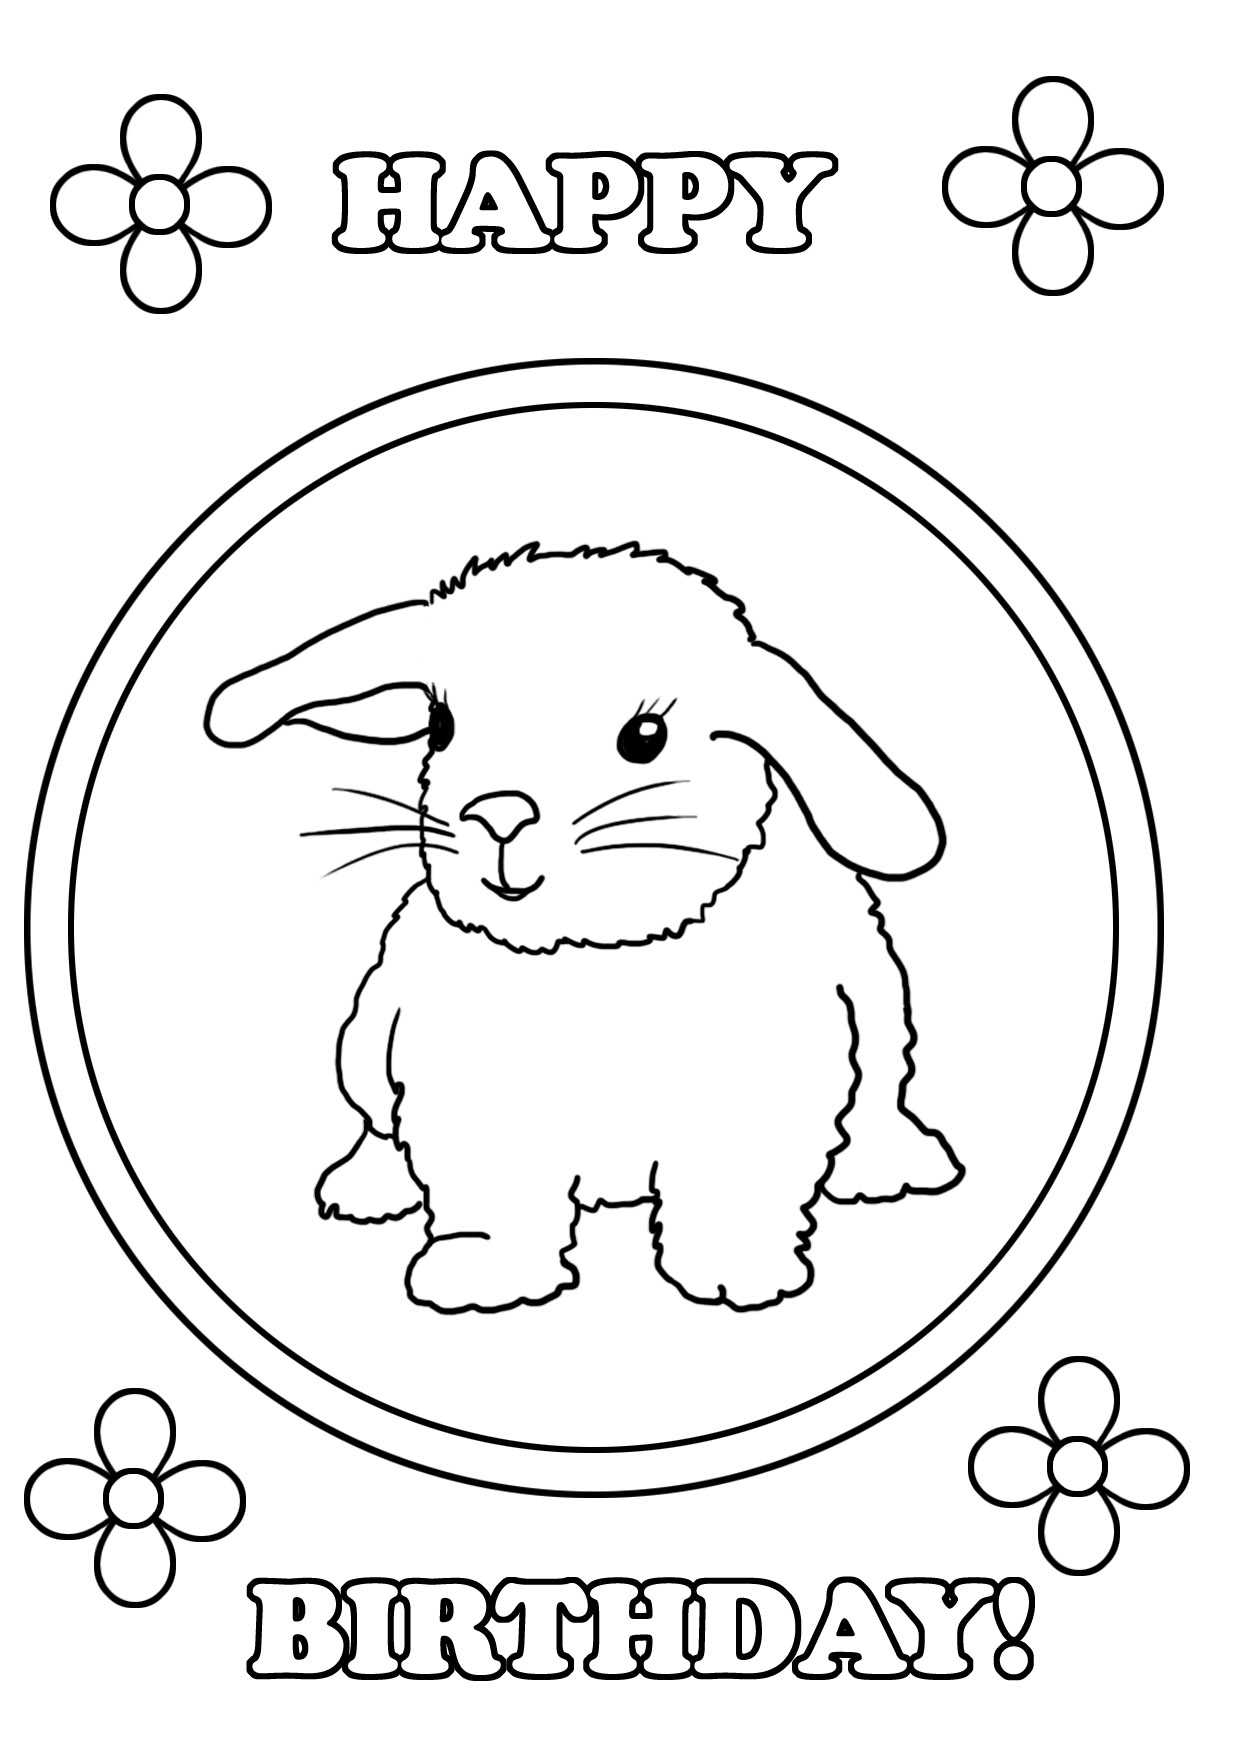 coloring pages brithday - photo#27